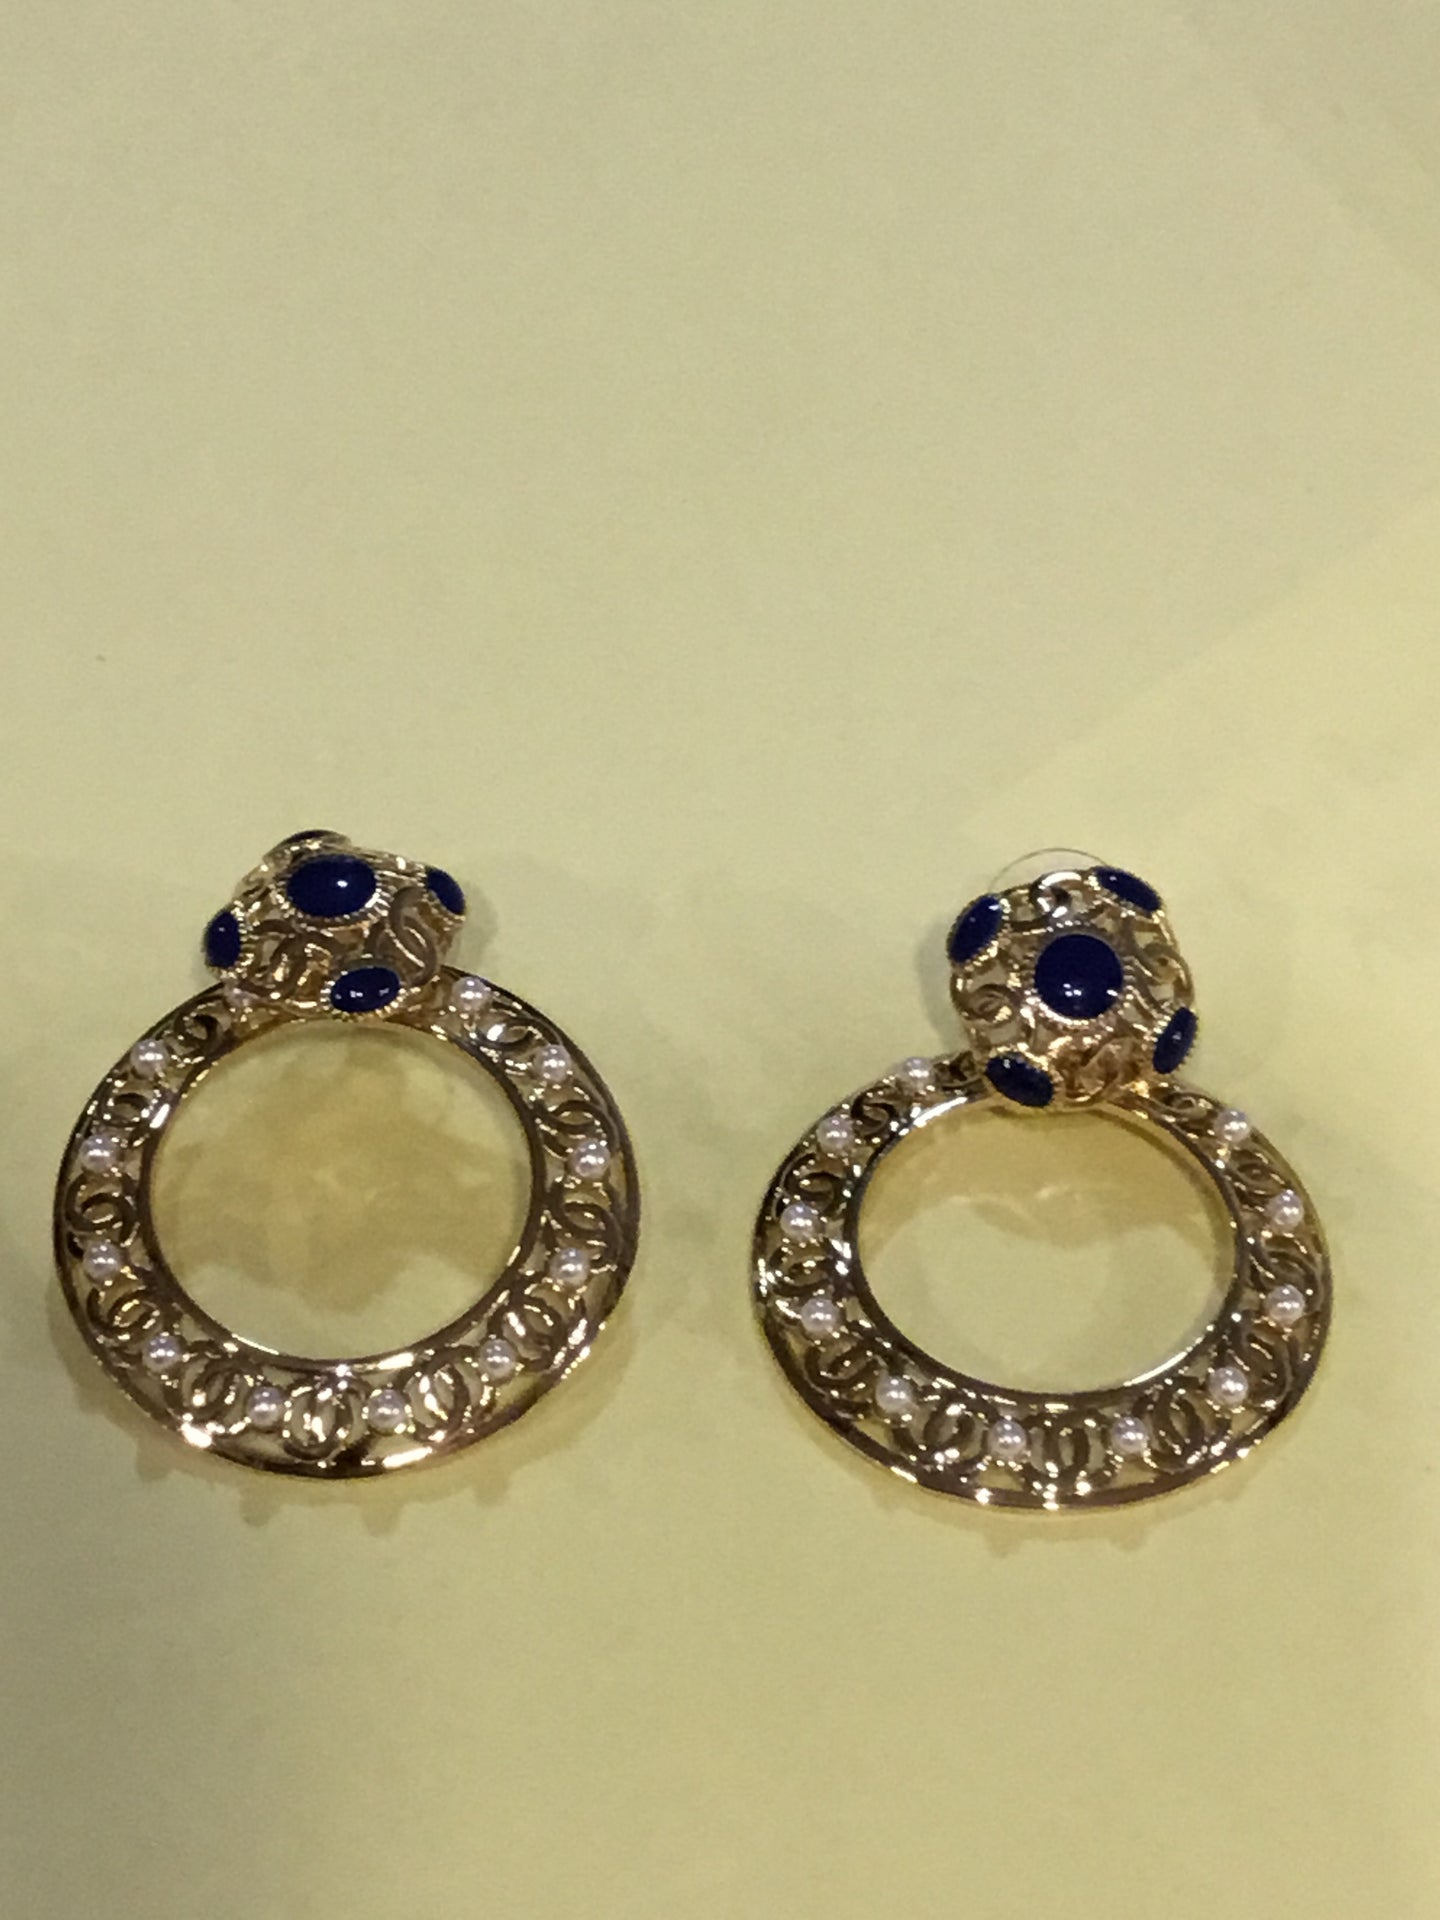 Chanel Round earrings